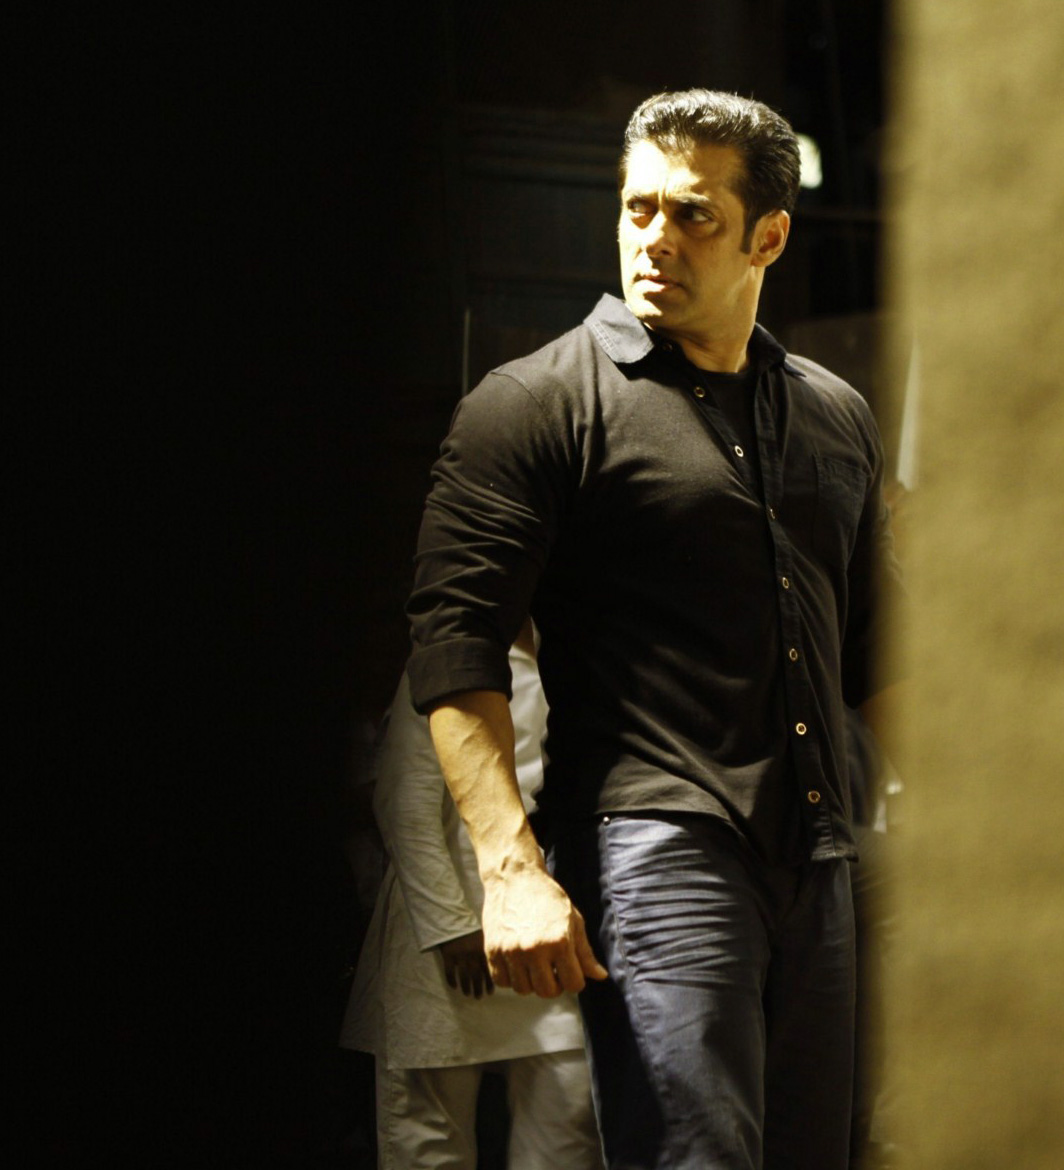 New Free Best Salman Khan Images Pics Wallpaper Download